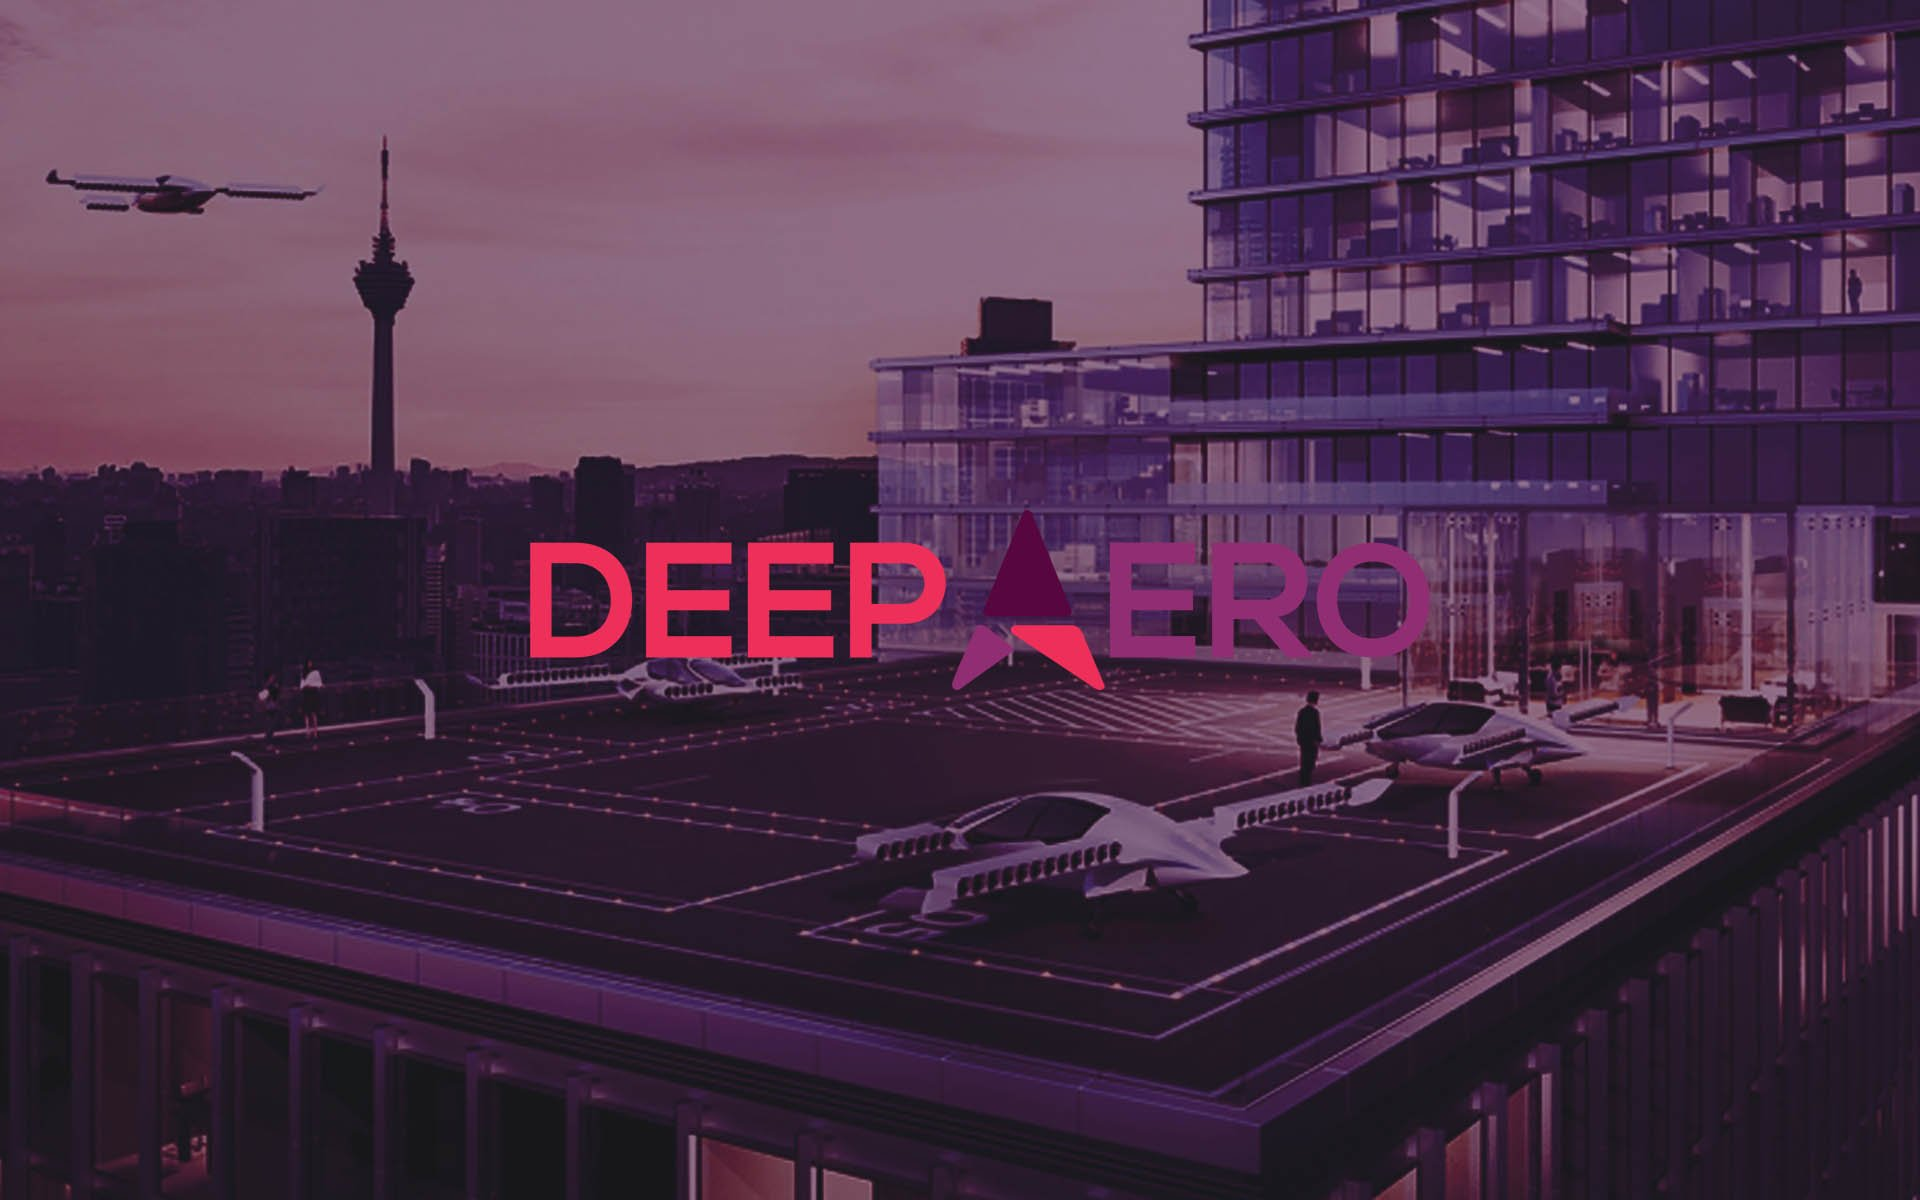 DEEP AERO (DRONE) Token will power the AI Driven Drone Economy on the Blockchain